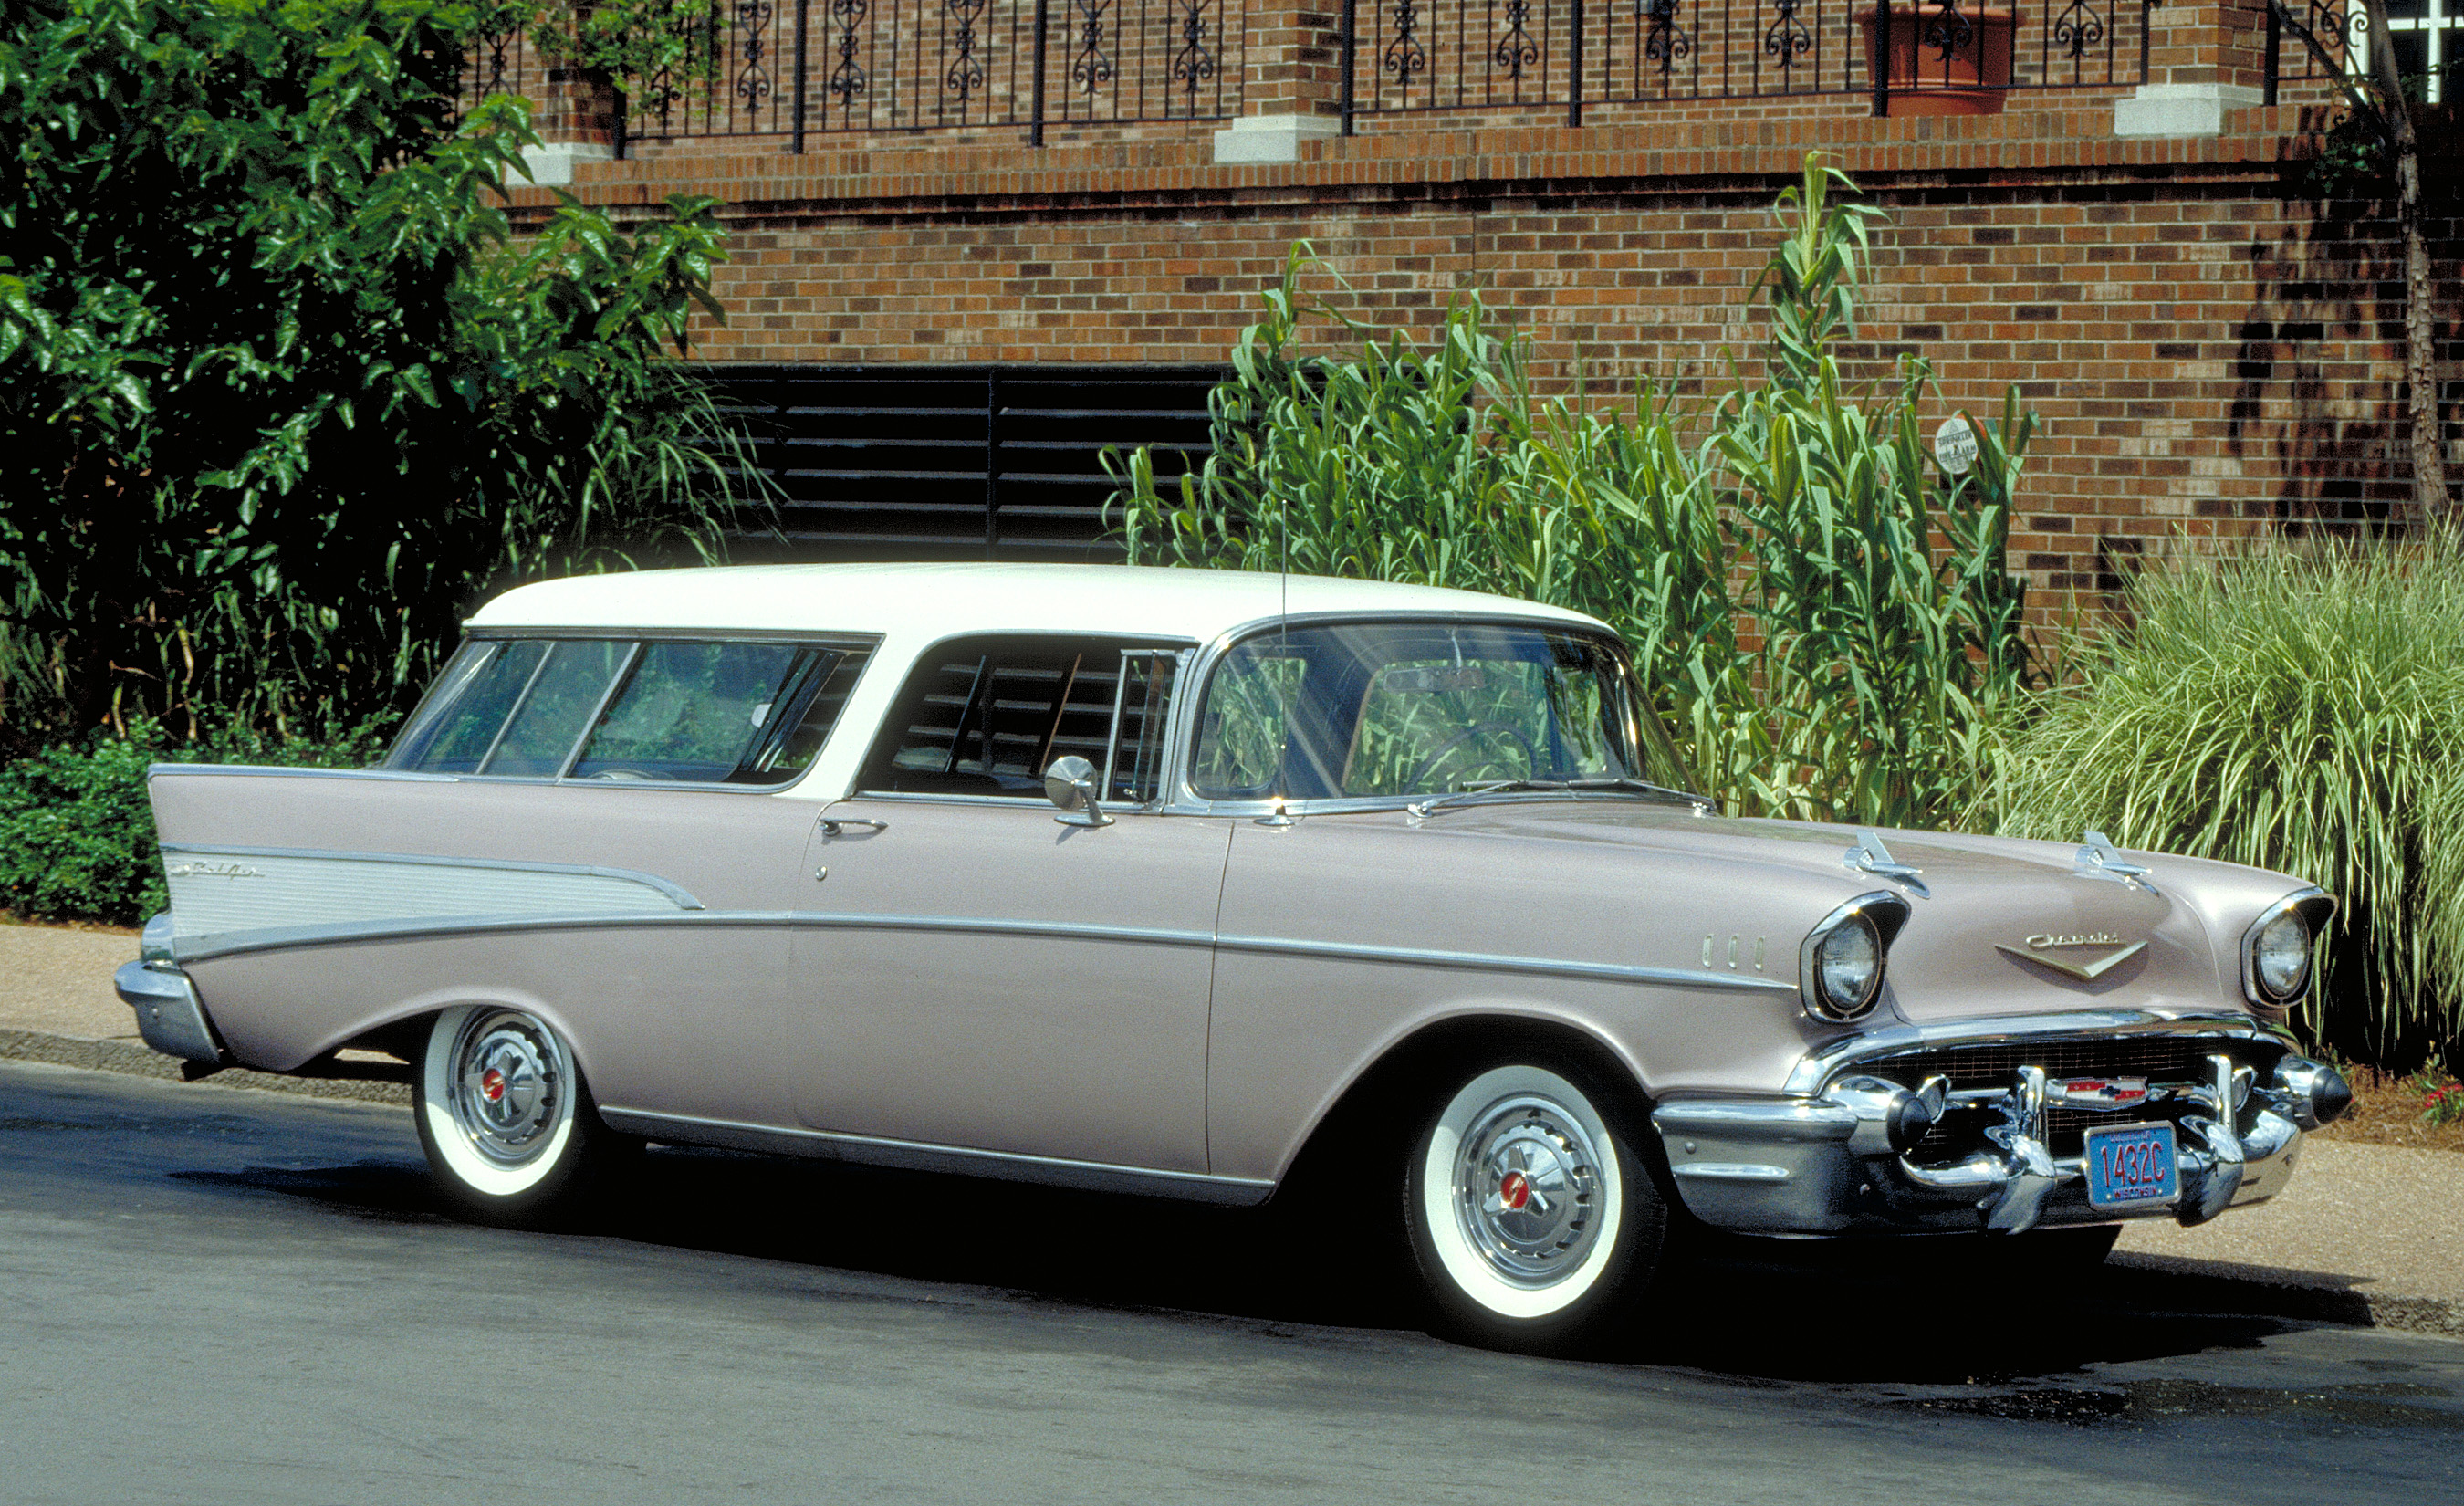 Chevrolet Gallery 1966 Bel Air Wagon 1957 Nomad